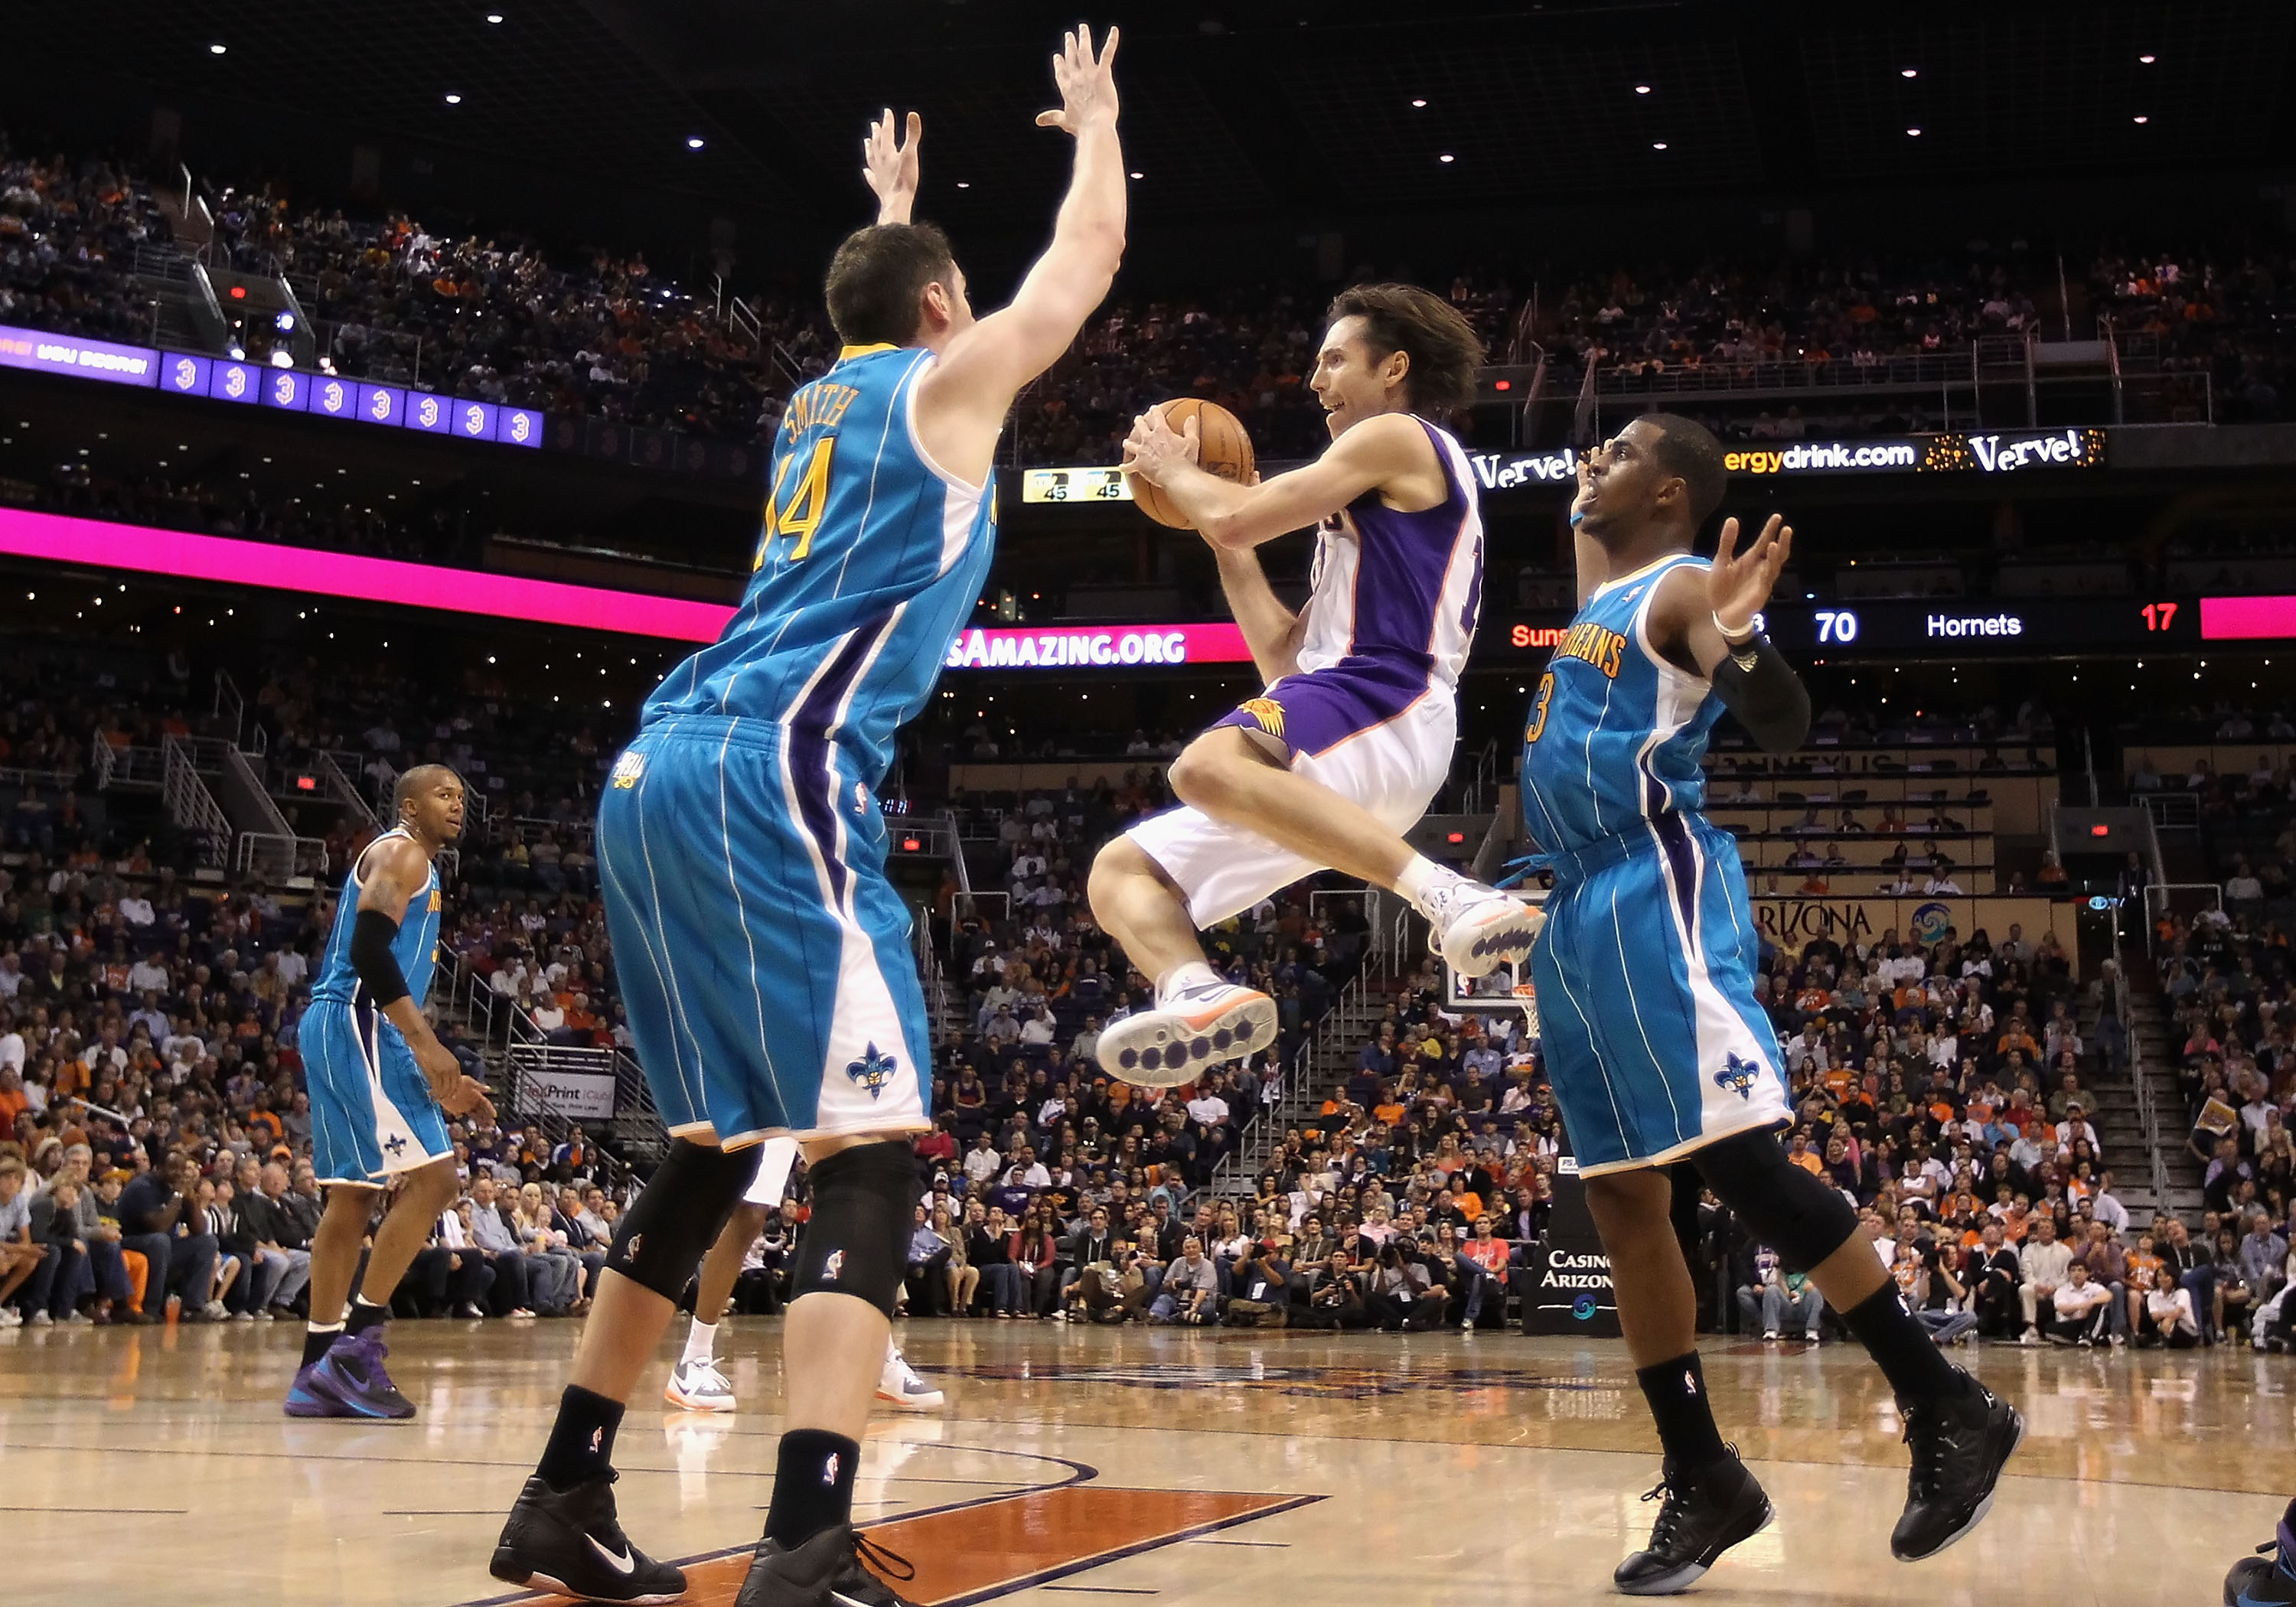 PHOENIX, AZ - JANUARY 30:  Steve Nash #13 of the Phoenix Suns makes a leaping pass guarded by Jason Smith #14 and Chris Paul #3 of the New Orleans Hornets during the NBA game at US Airways Center on January 30, 2011 in Phoenix, Arizona. The Suns defeated